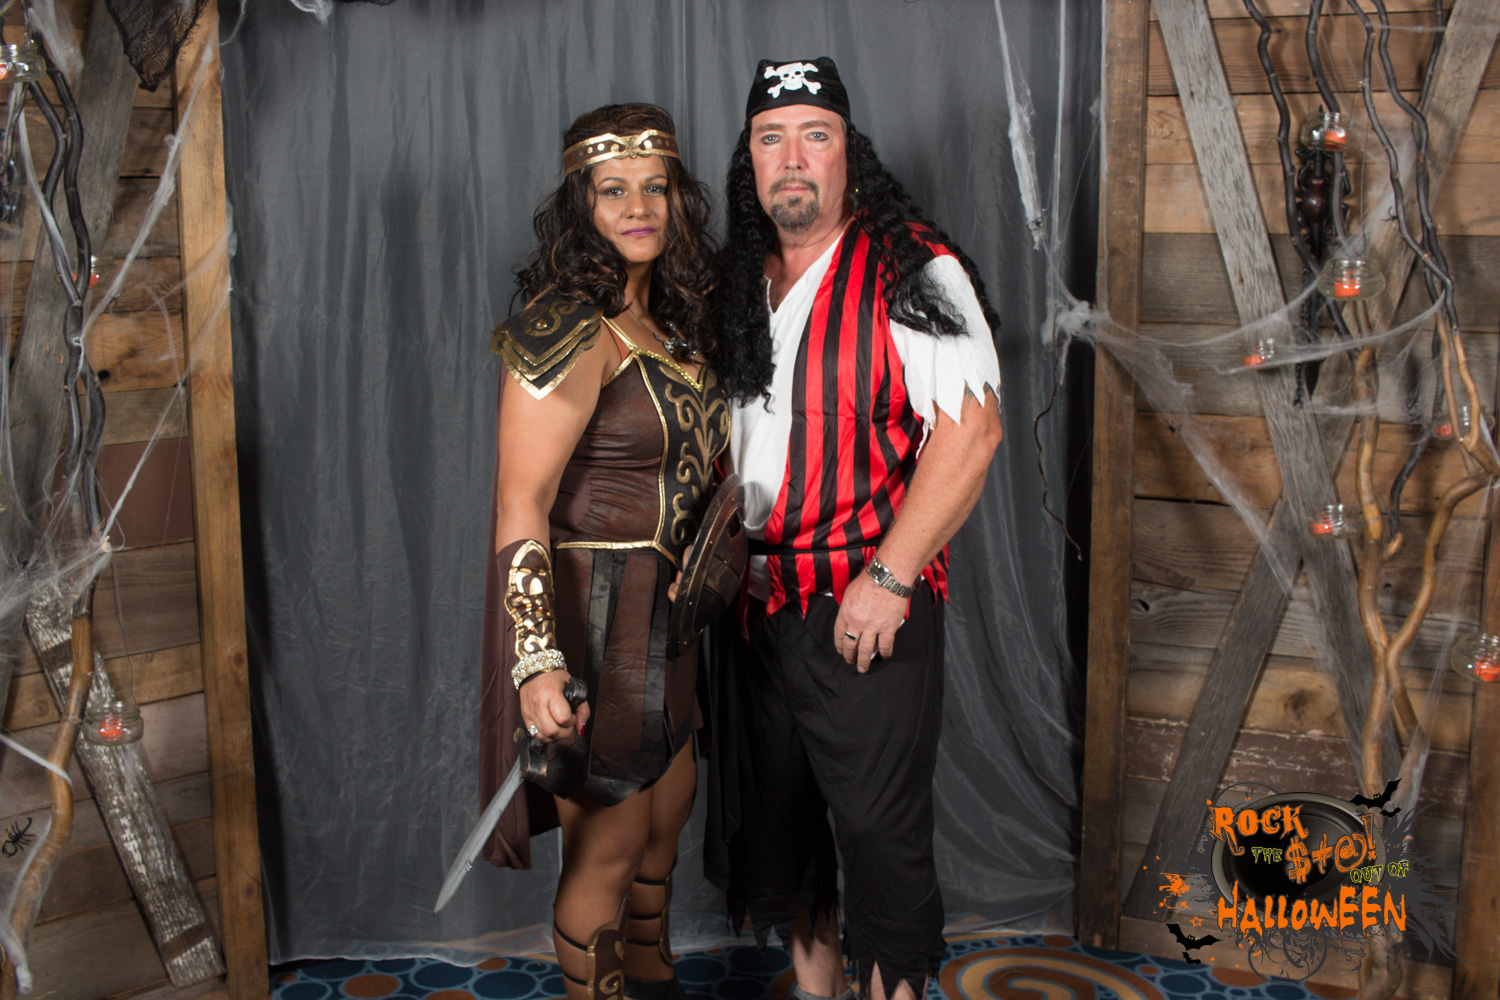 Halloween-PhotoBooth-012-6680